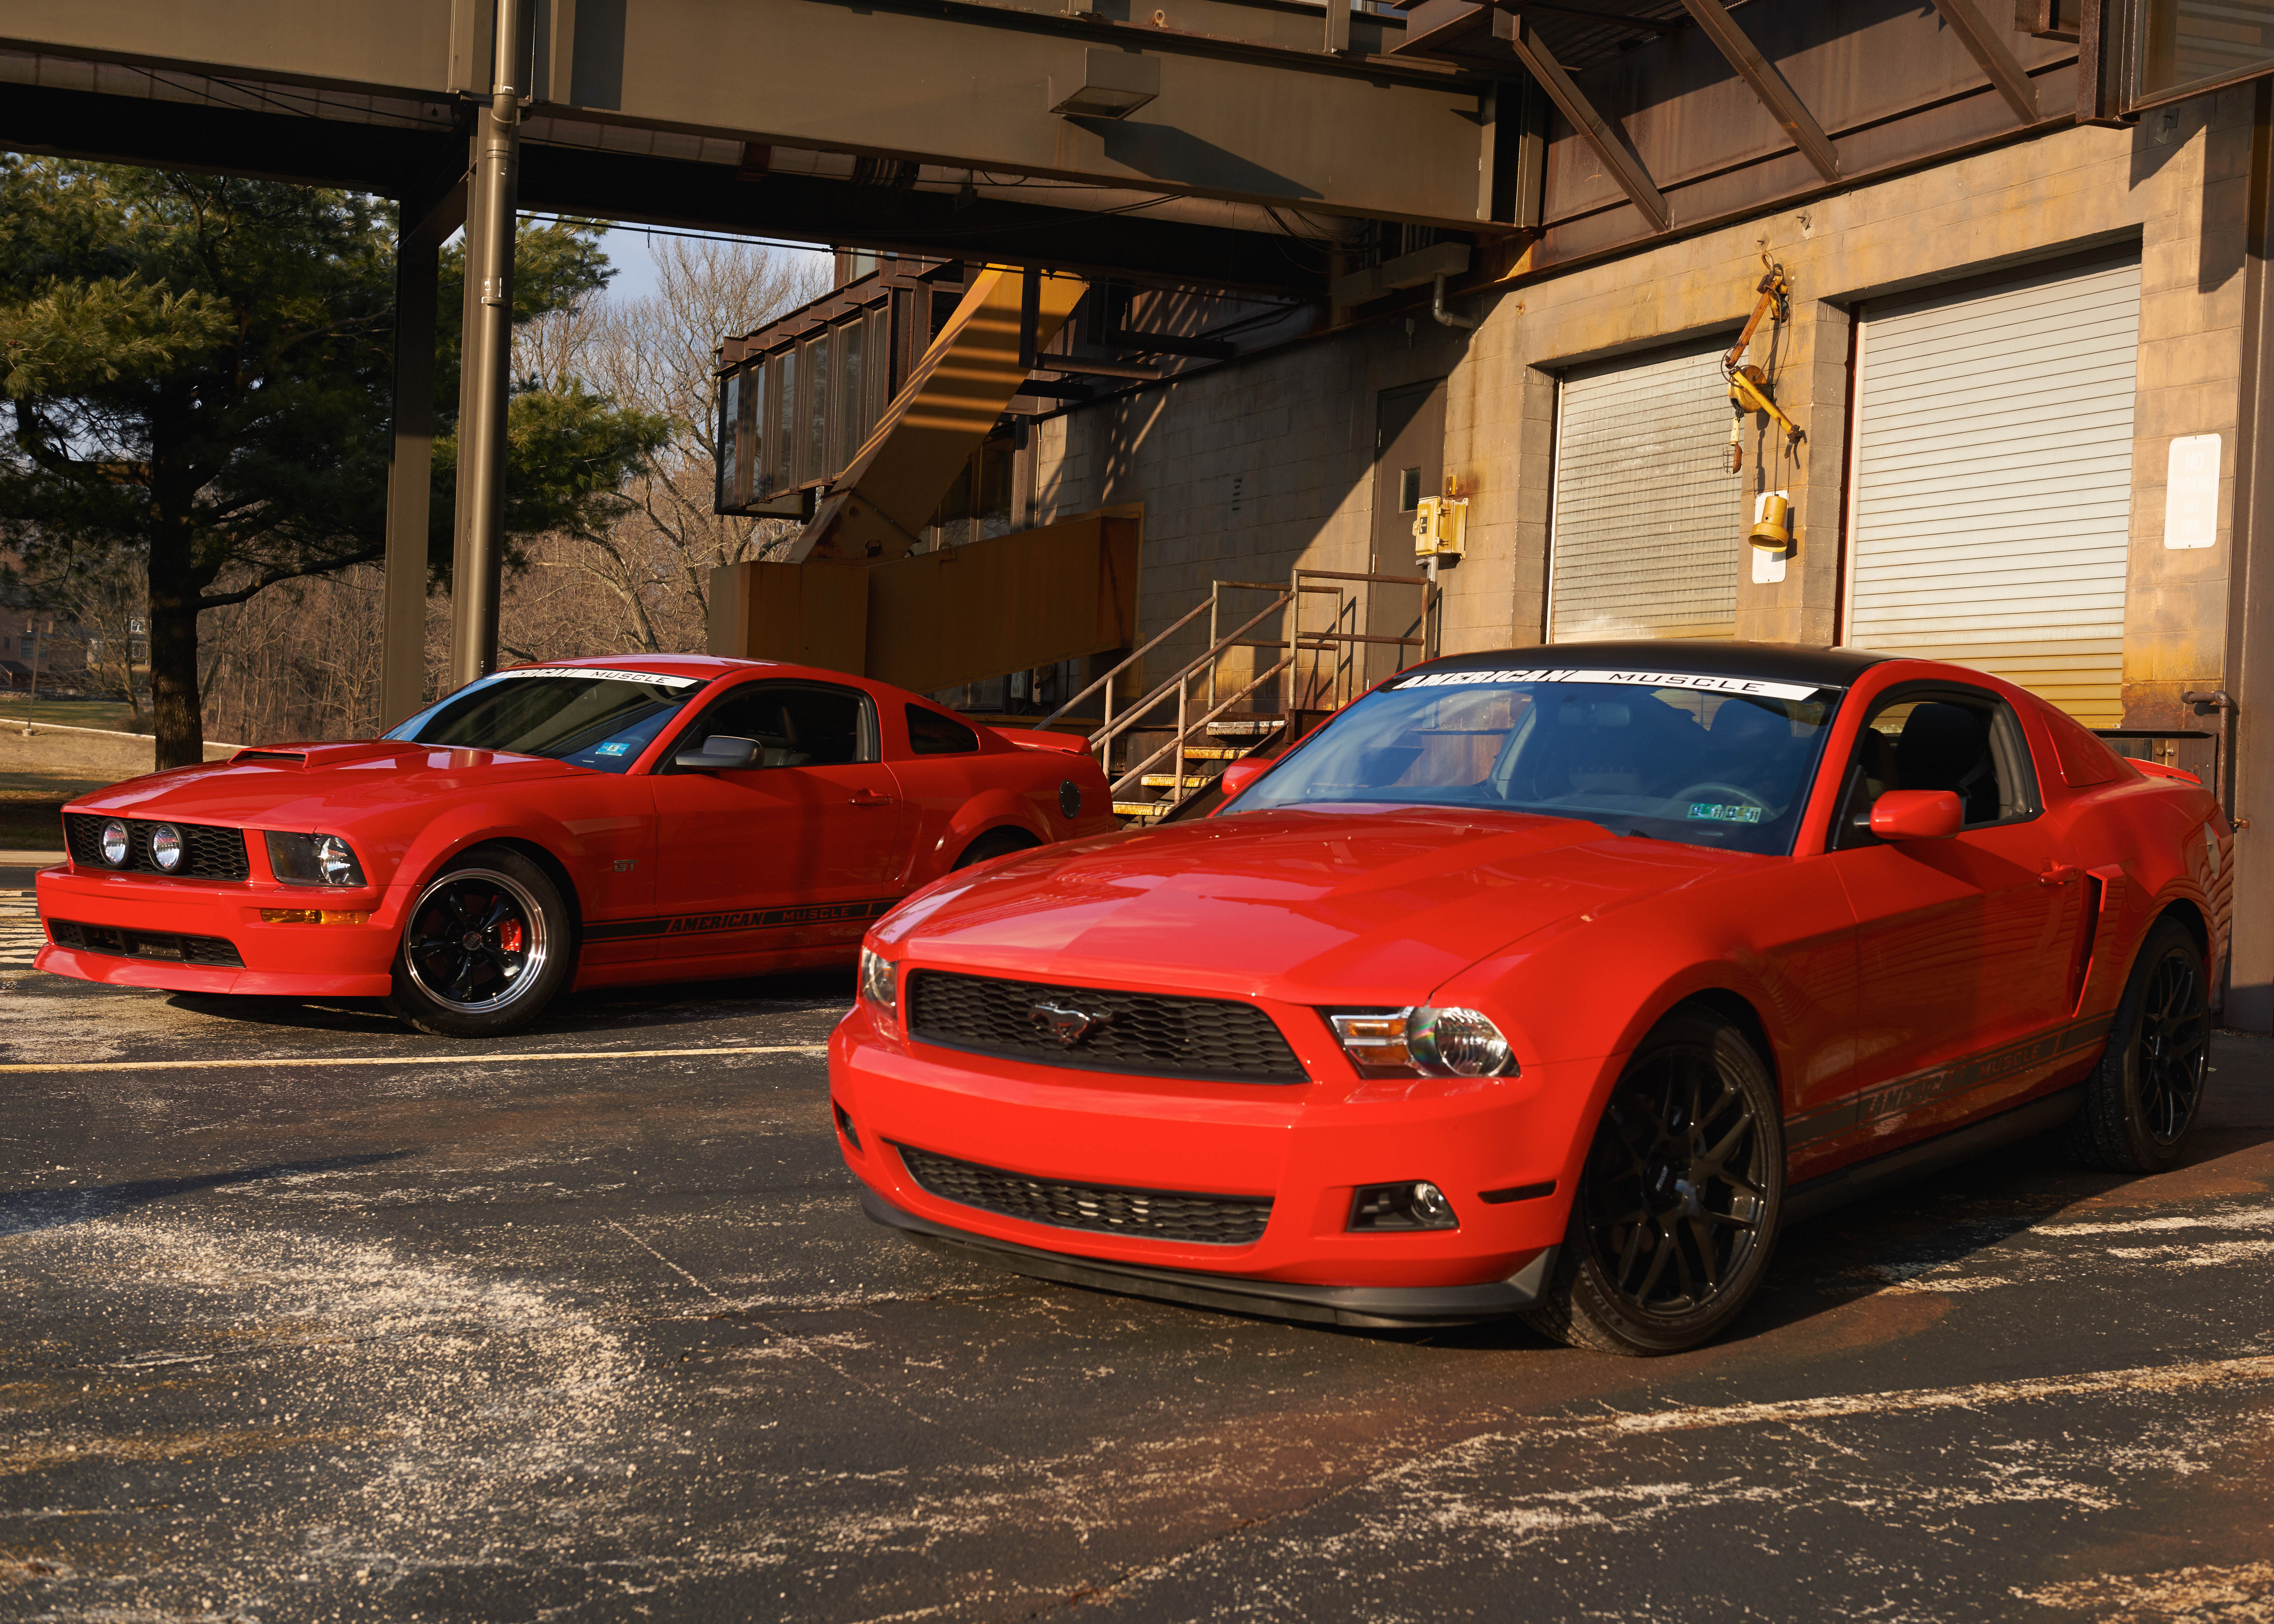 A 2007 and a 2011 Mustang at the Warehouse